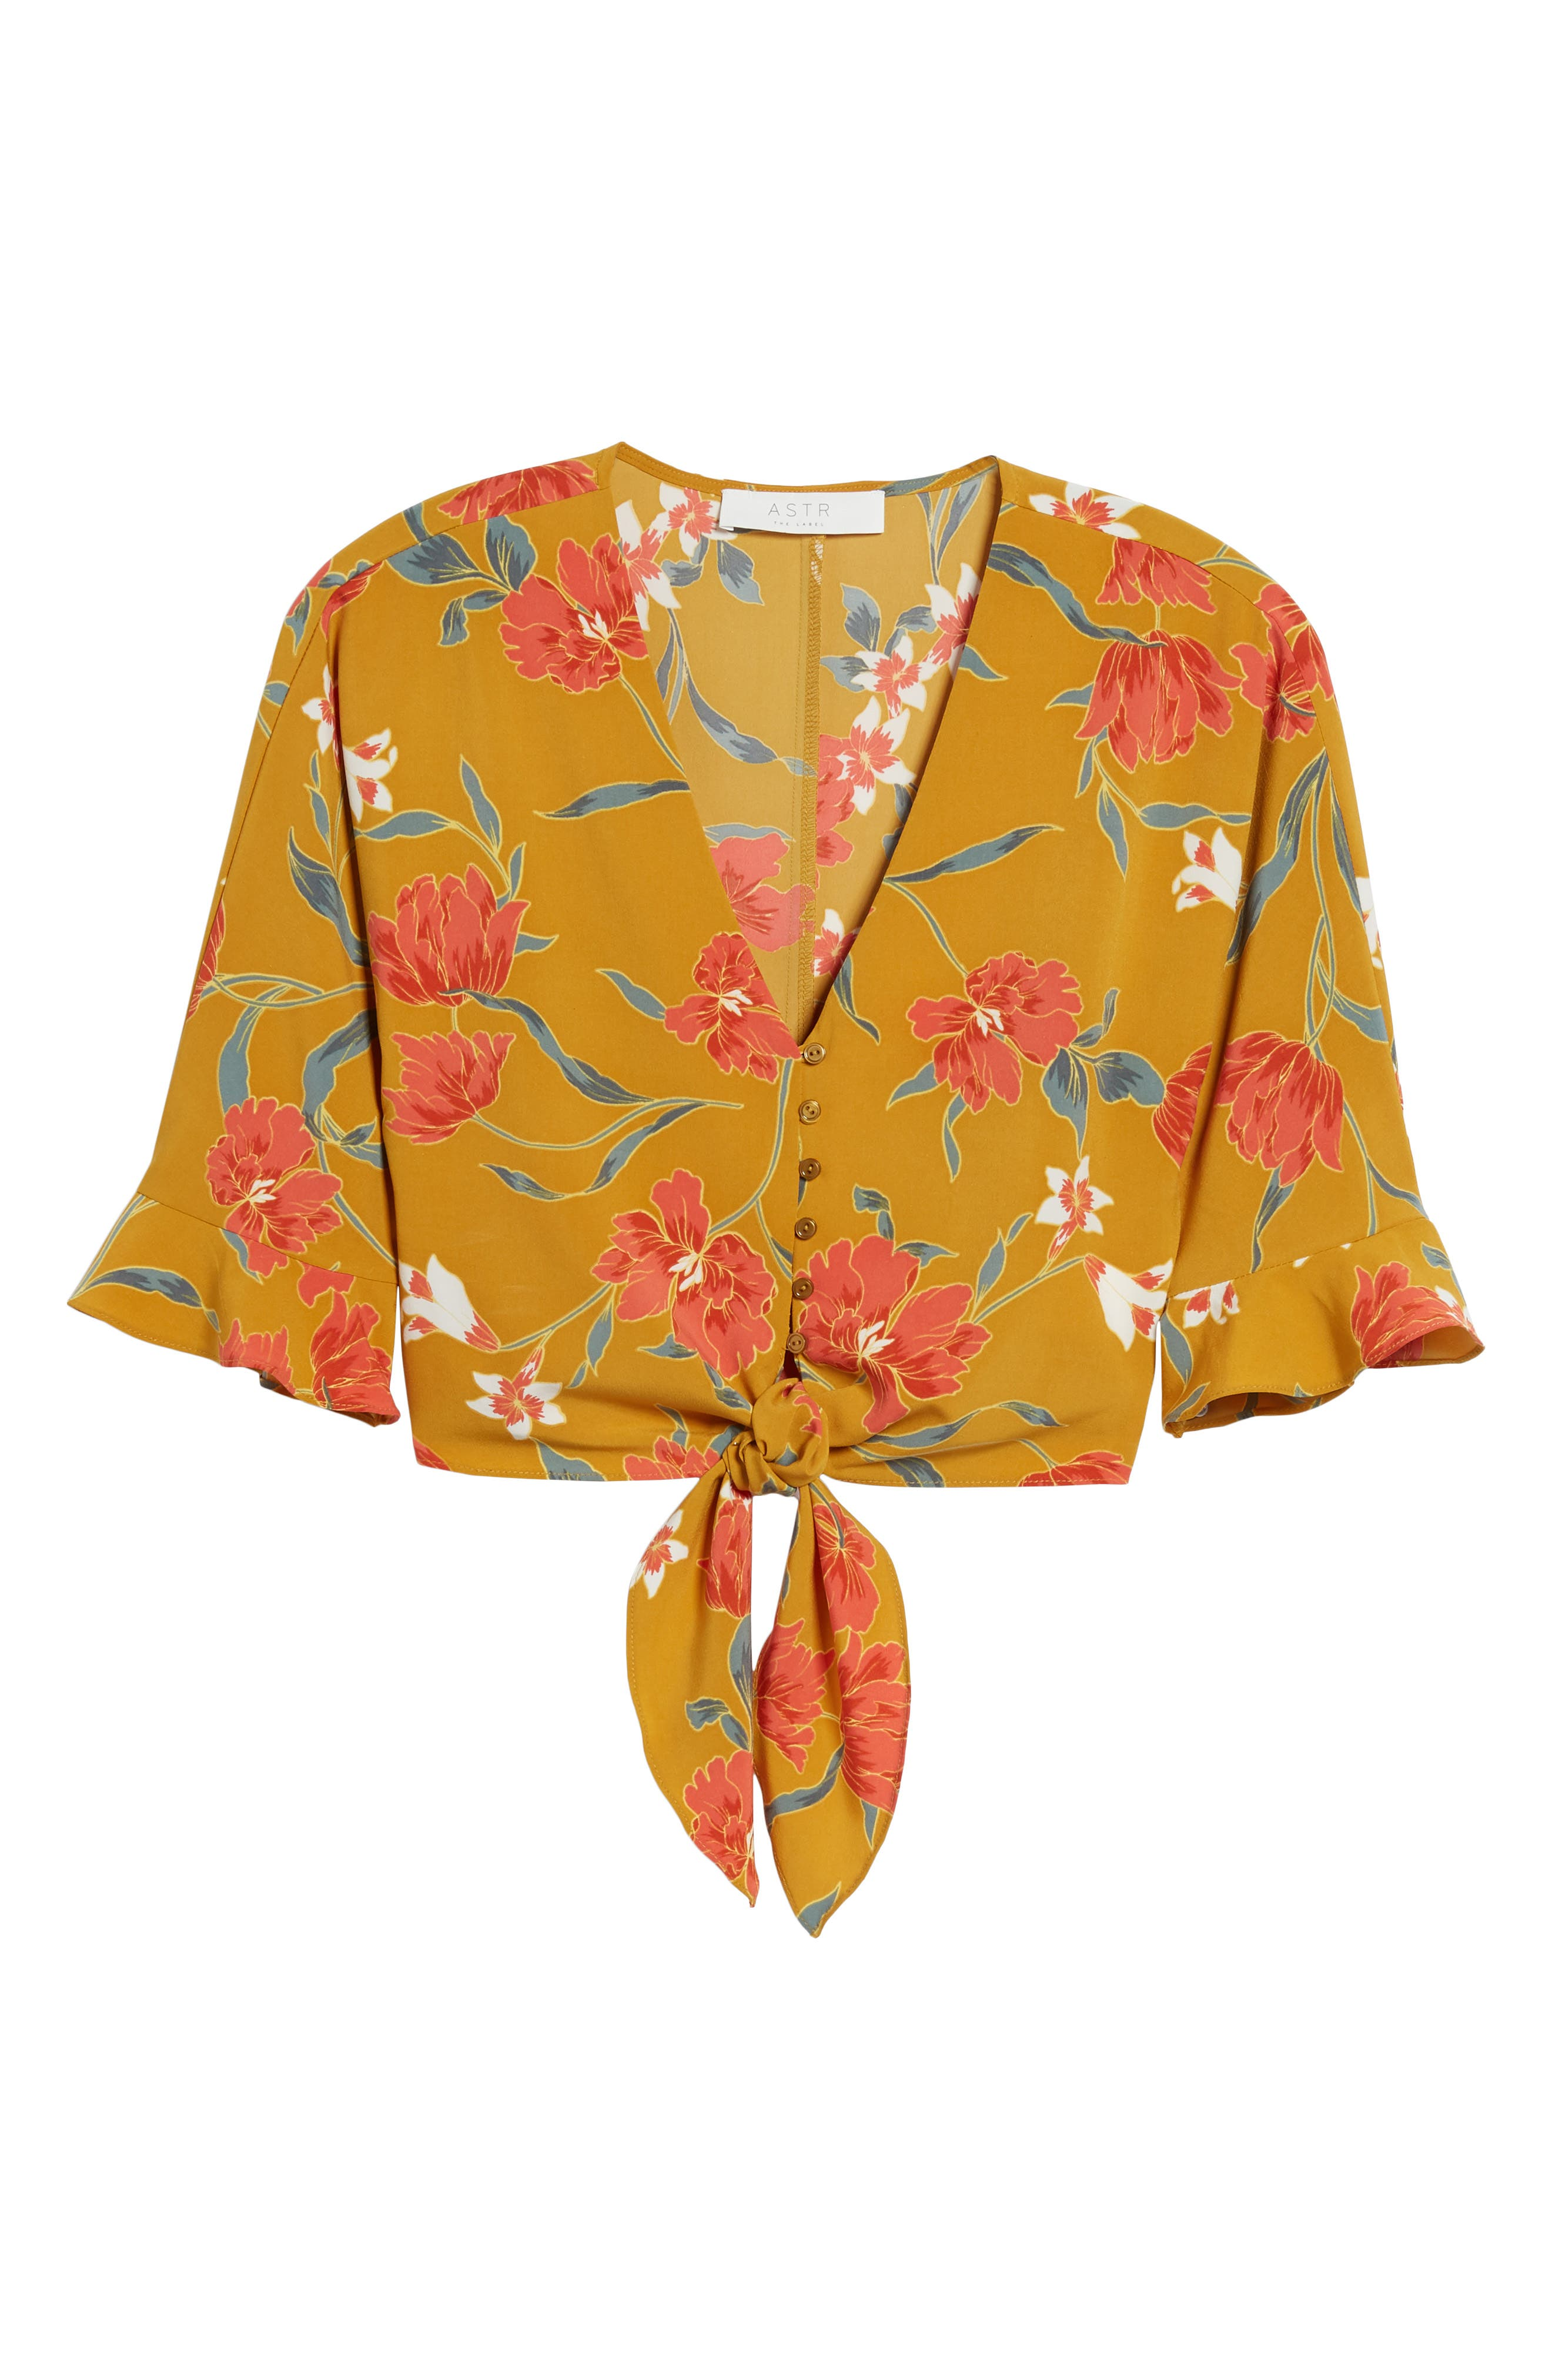 Tie Front Crop Top,                             Alternate thumbnail 7, color,                             Mustard Multi Floral